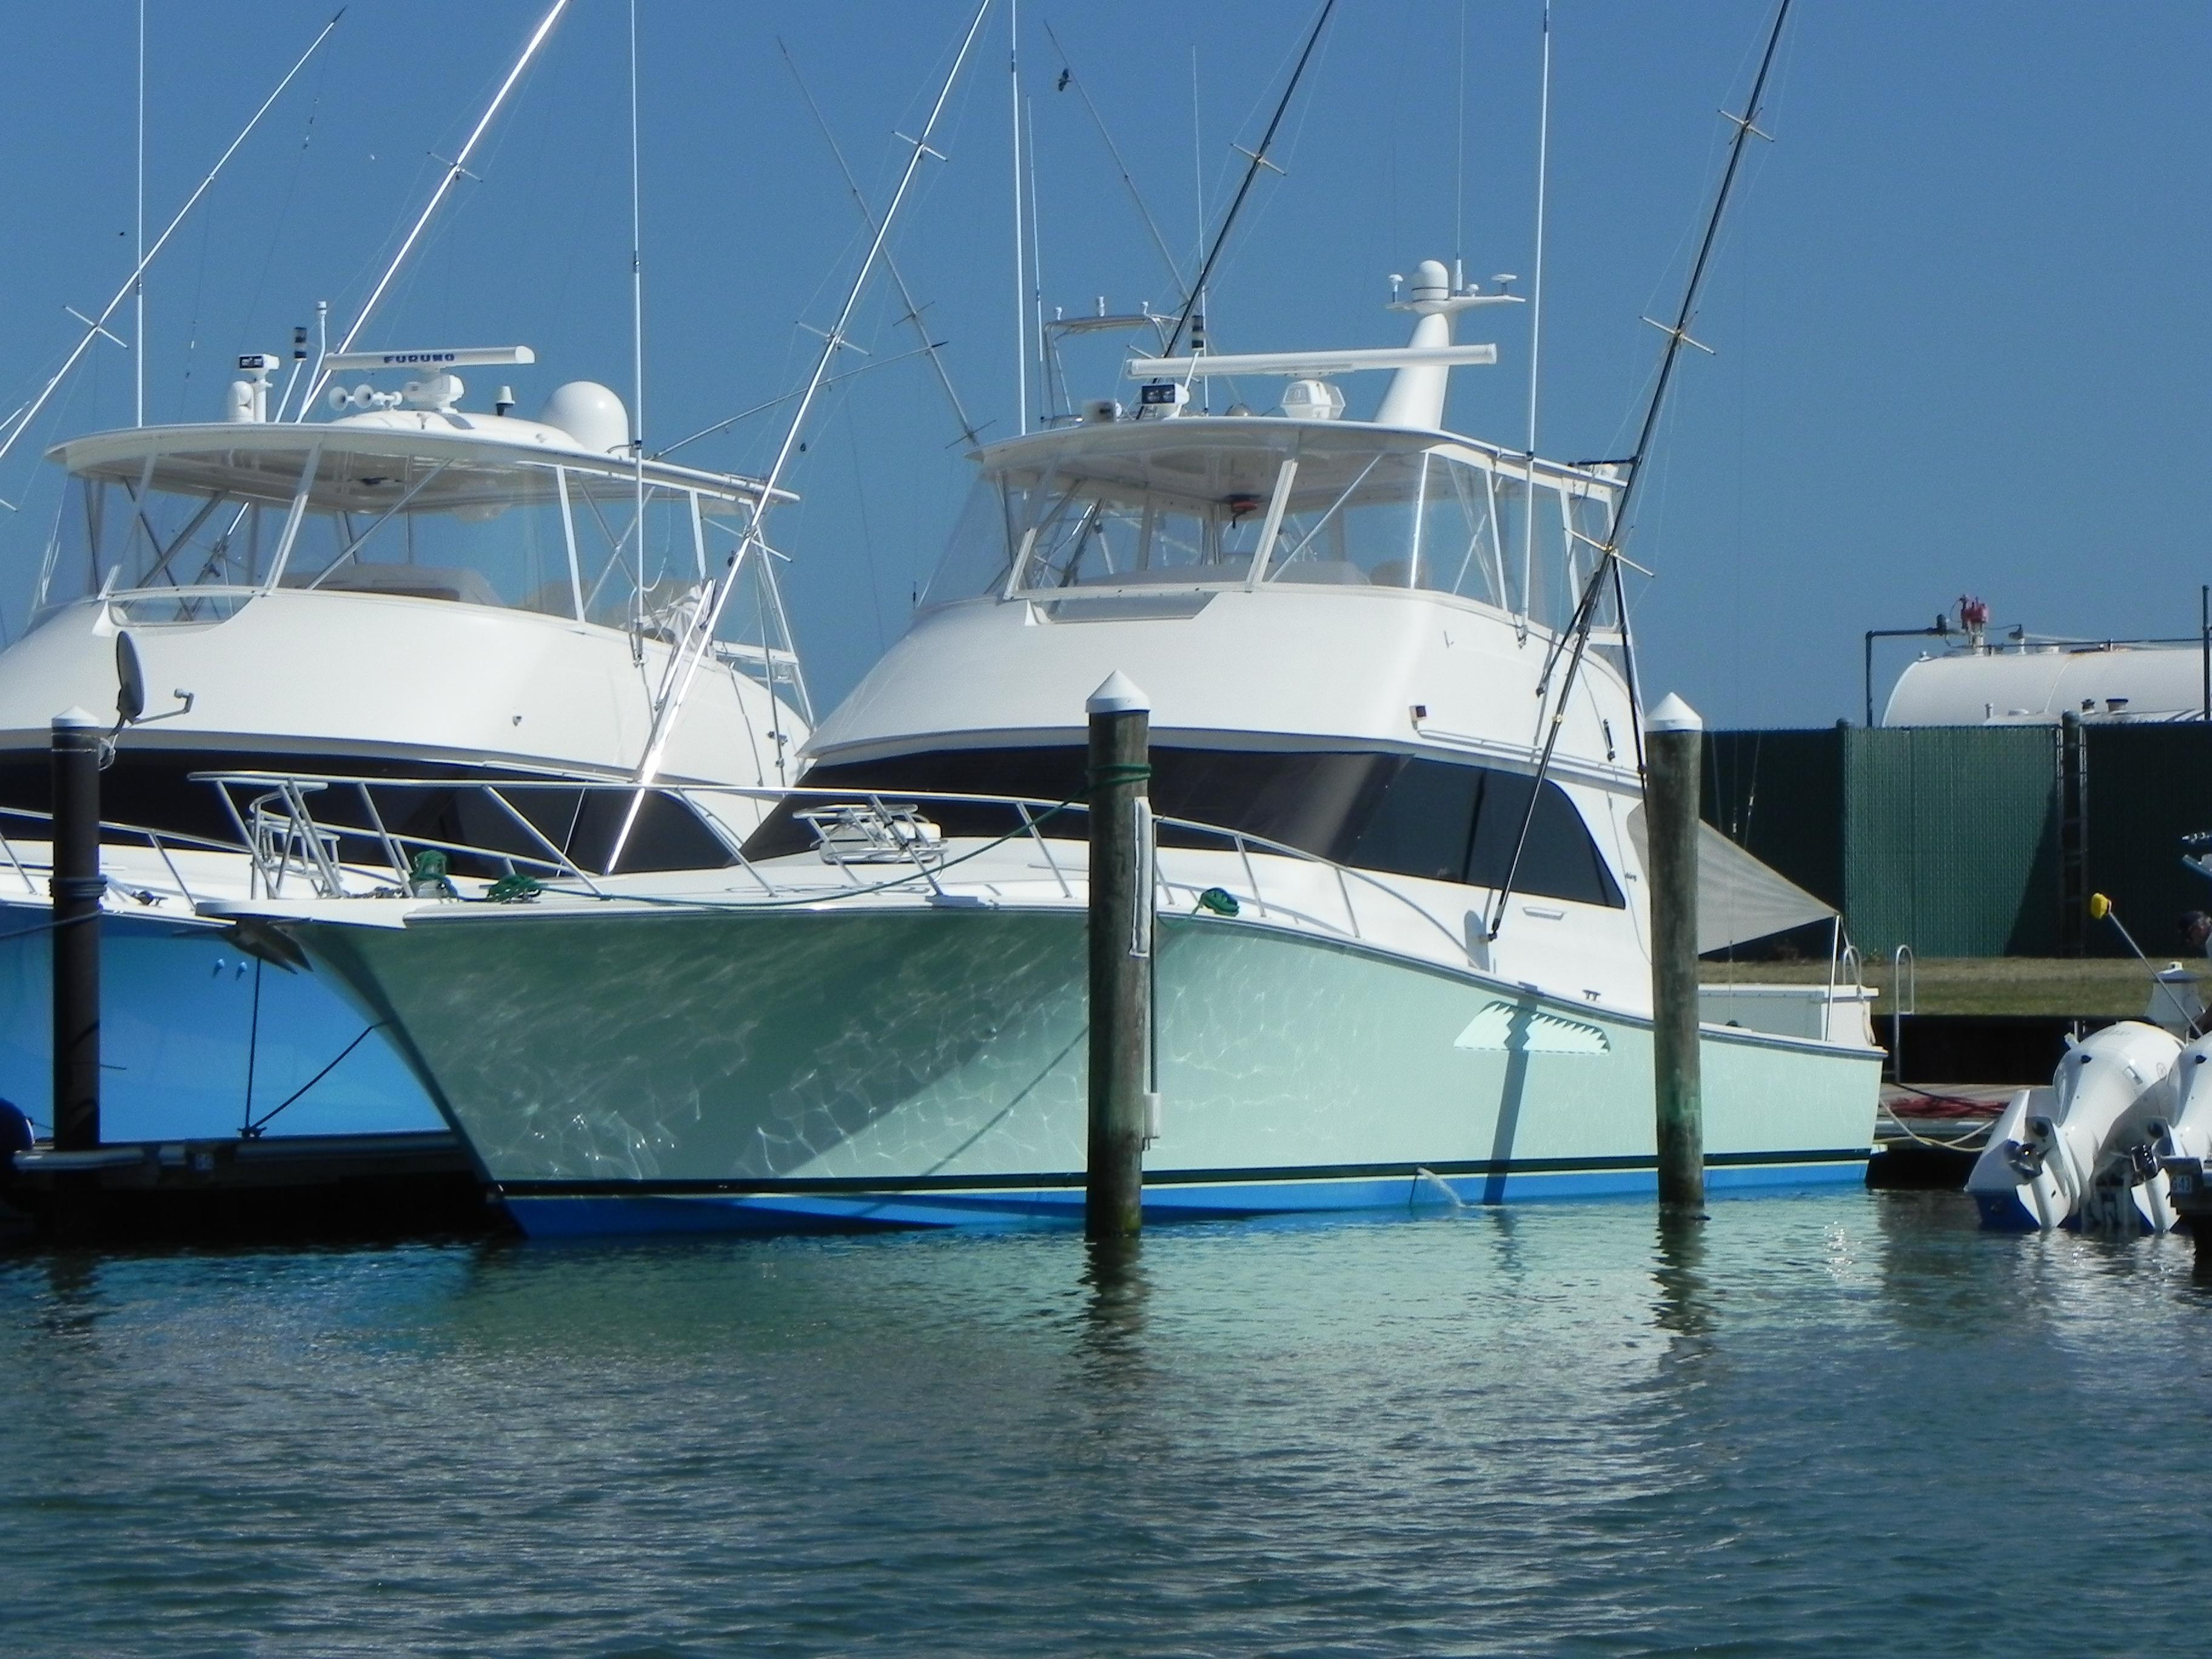 55 viking yachts 1999 for sale in delaware us denison for Sport fishing boats for sale by owner